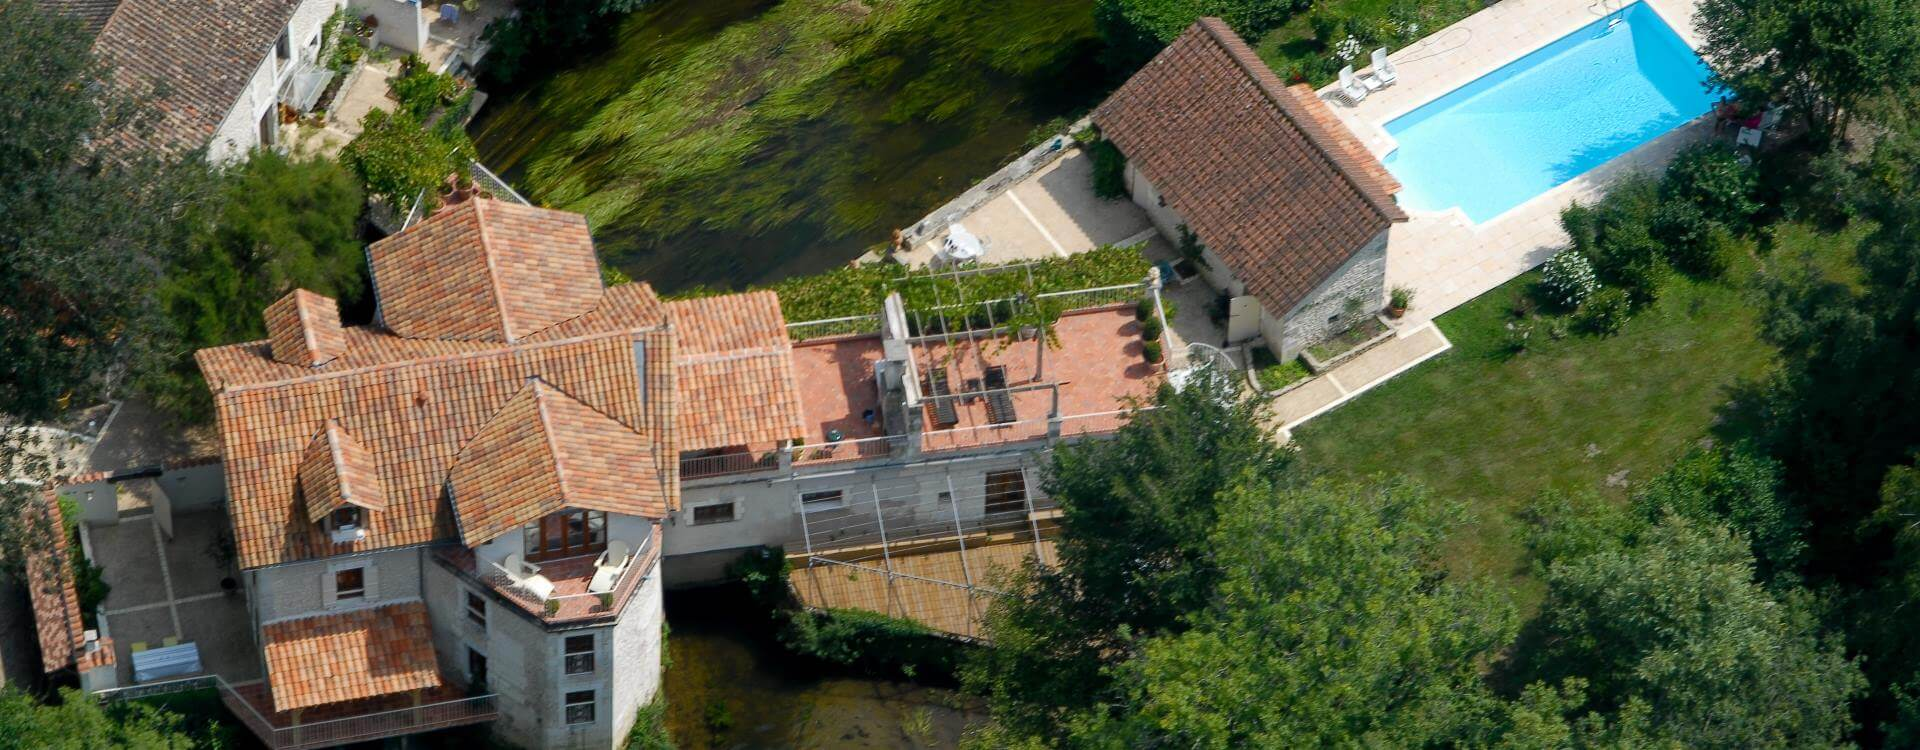 Le Moulin De Larcy – Ariel view with pool